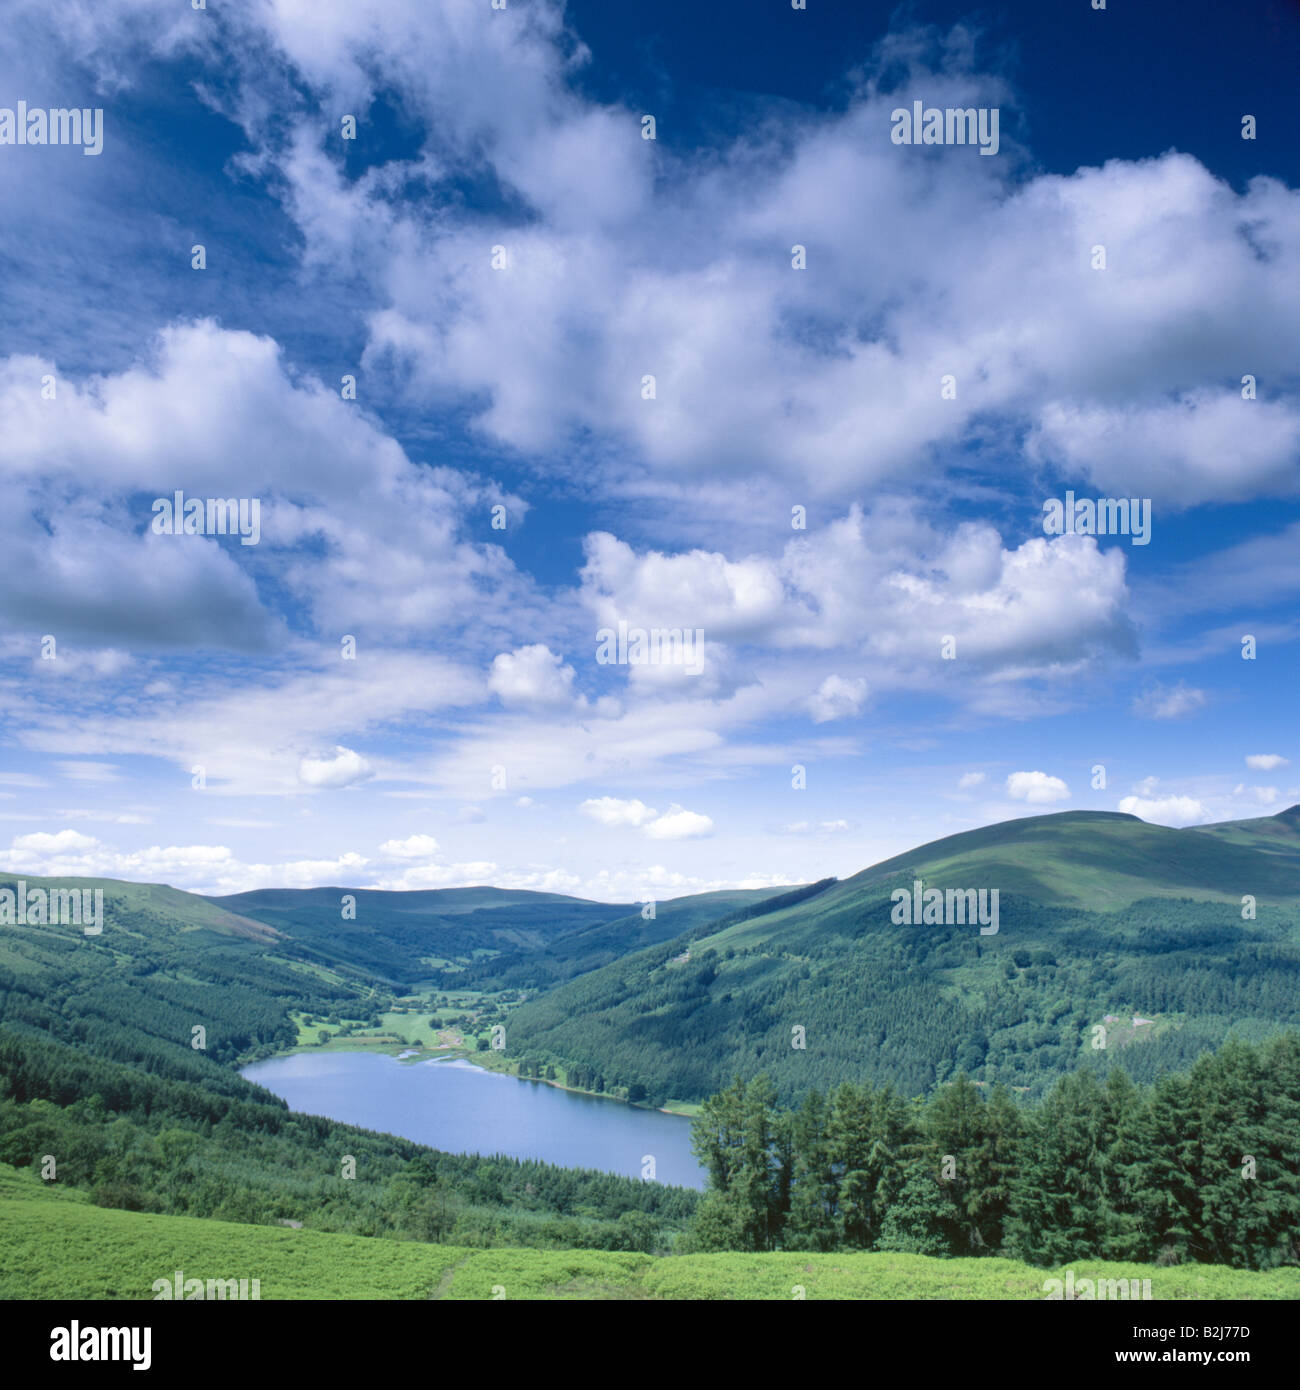 Glyn Collwn and Talybont Reservoir, Brecon Beacons, Wales, UK - Stock Image